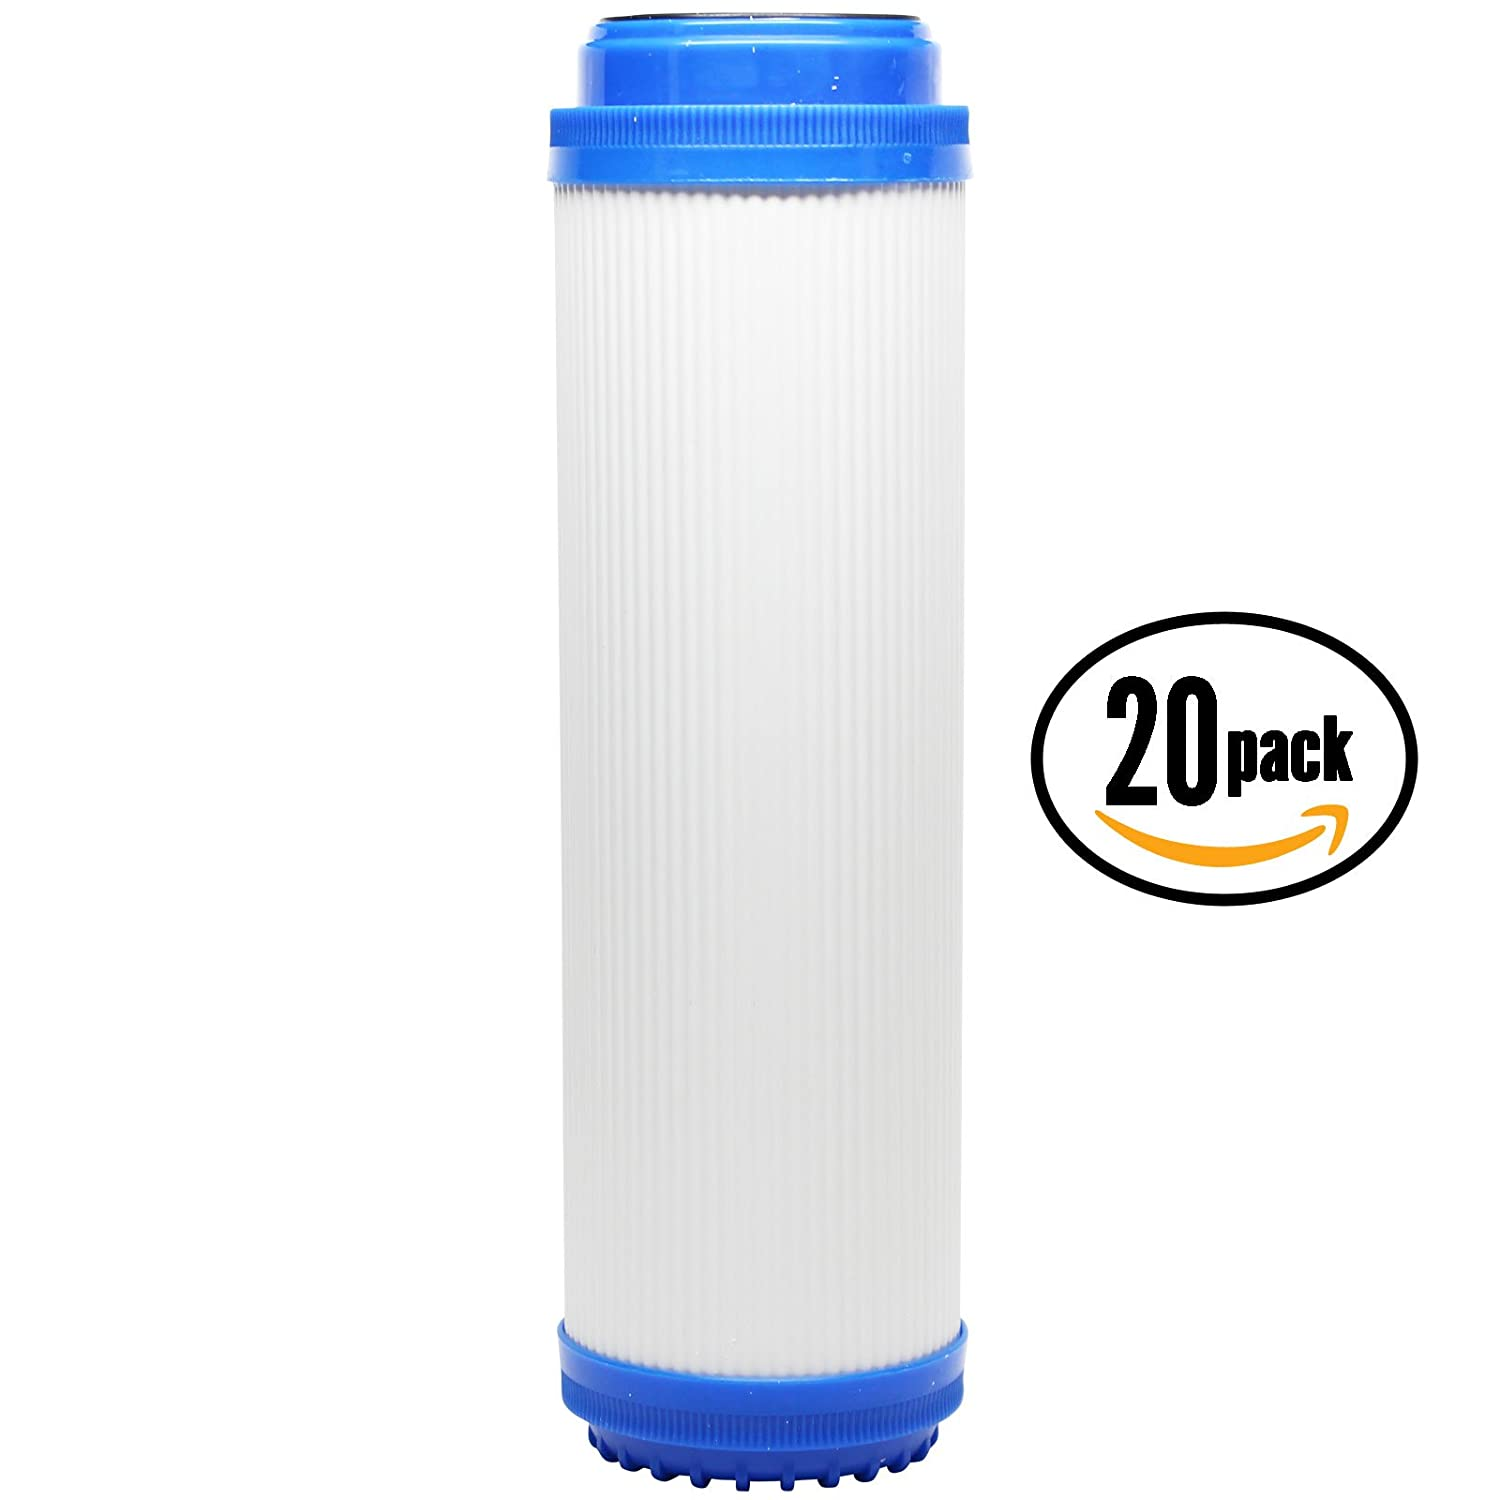 4-Pack Replacement Filter Kit Compatible with 3M Aqua-Pure AP2610SS RO System Includes Polypropylene Sediment Filter /& Granular Activated Carbon Filter Denali Pure Brand